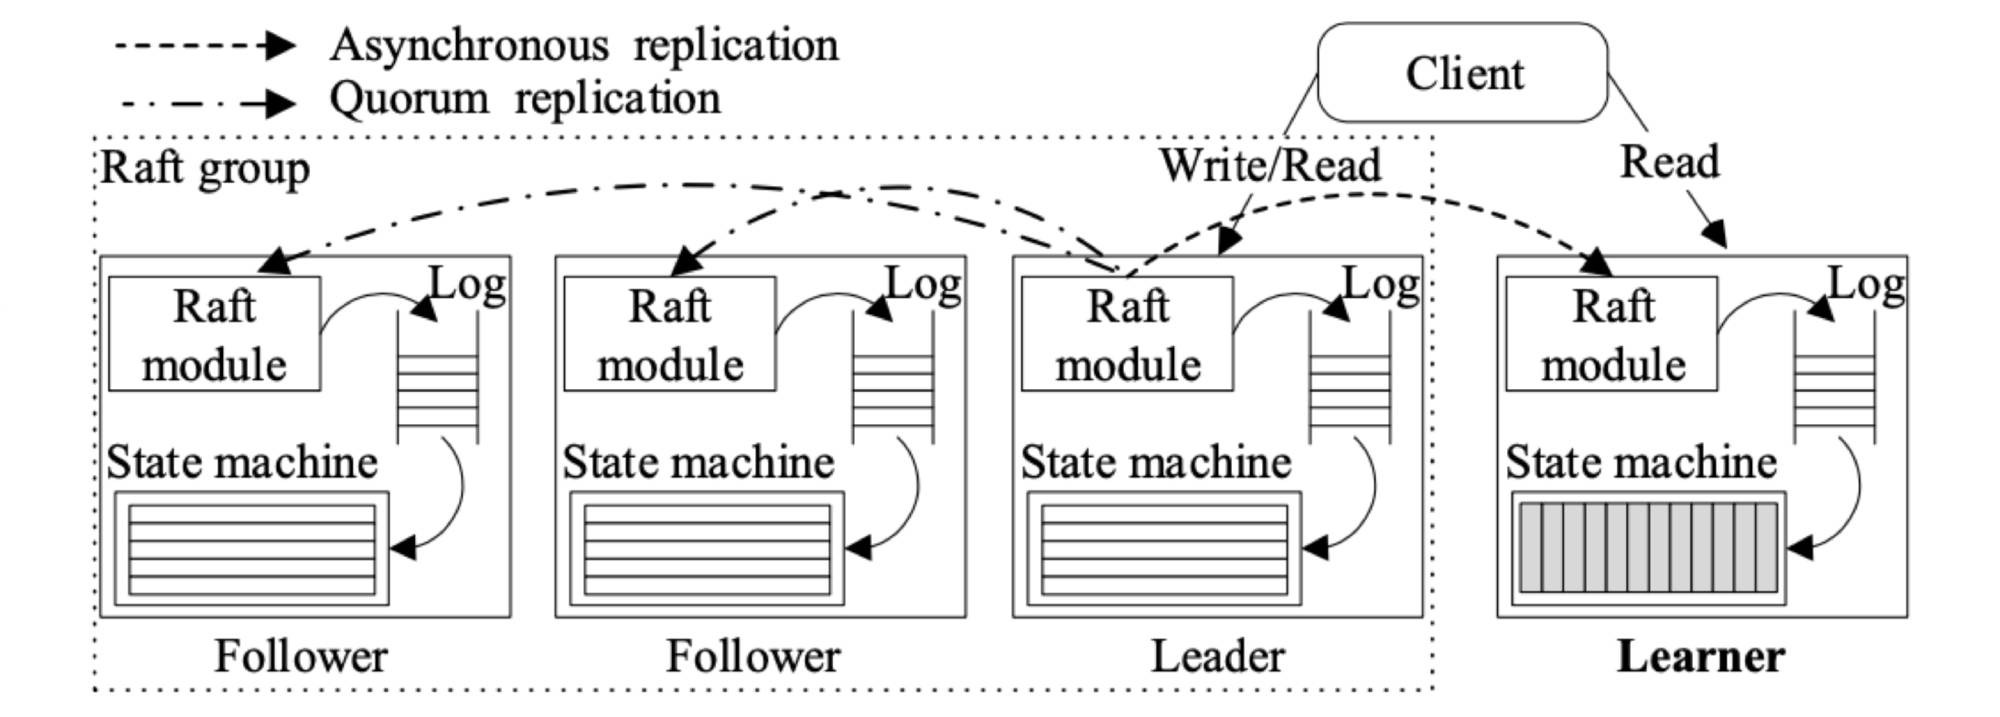 Multi-Raft storage architecture